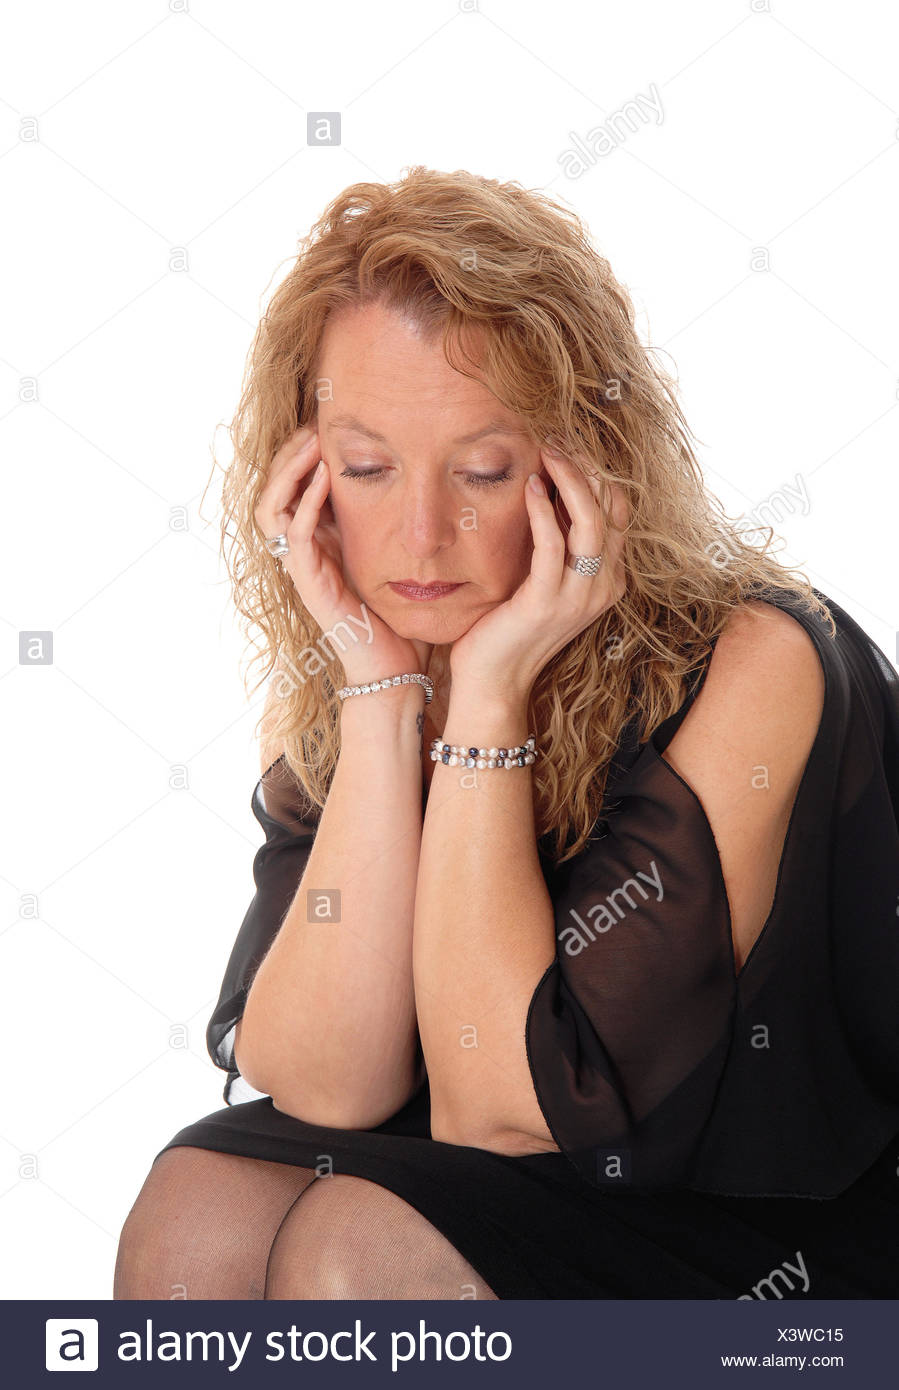 A sad looking blond woman sitting. - Stock Image